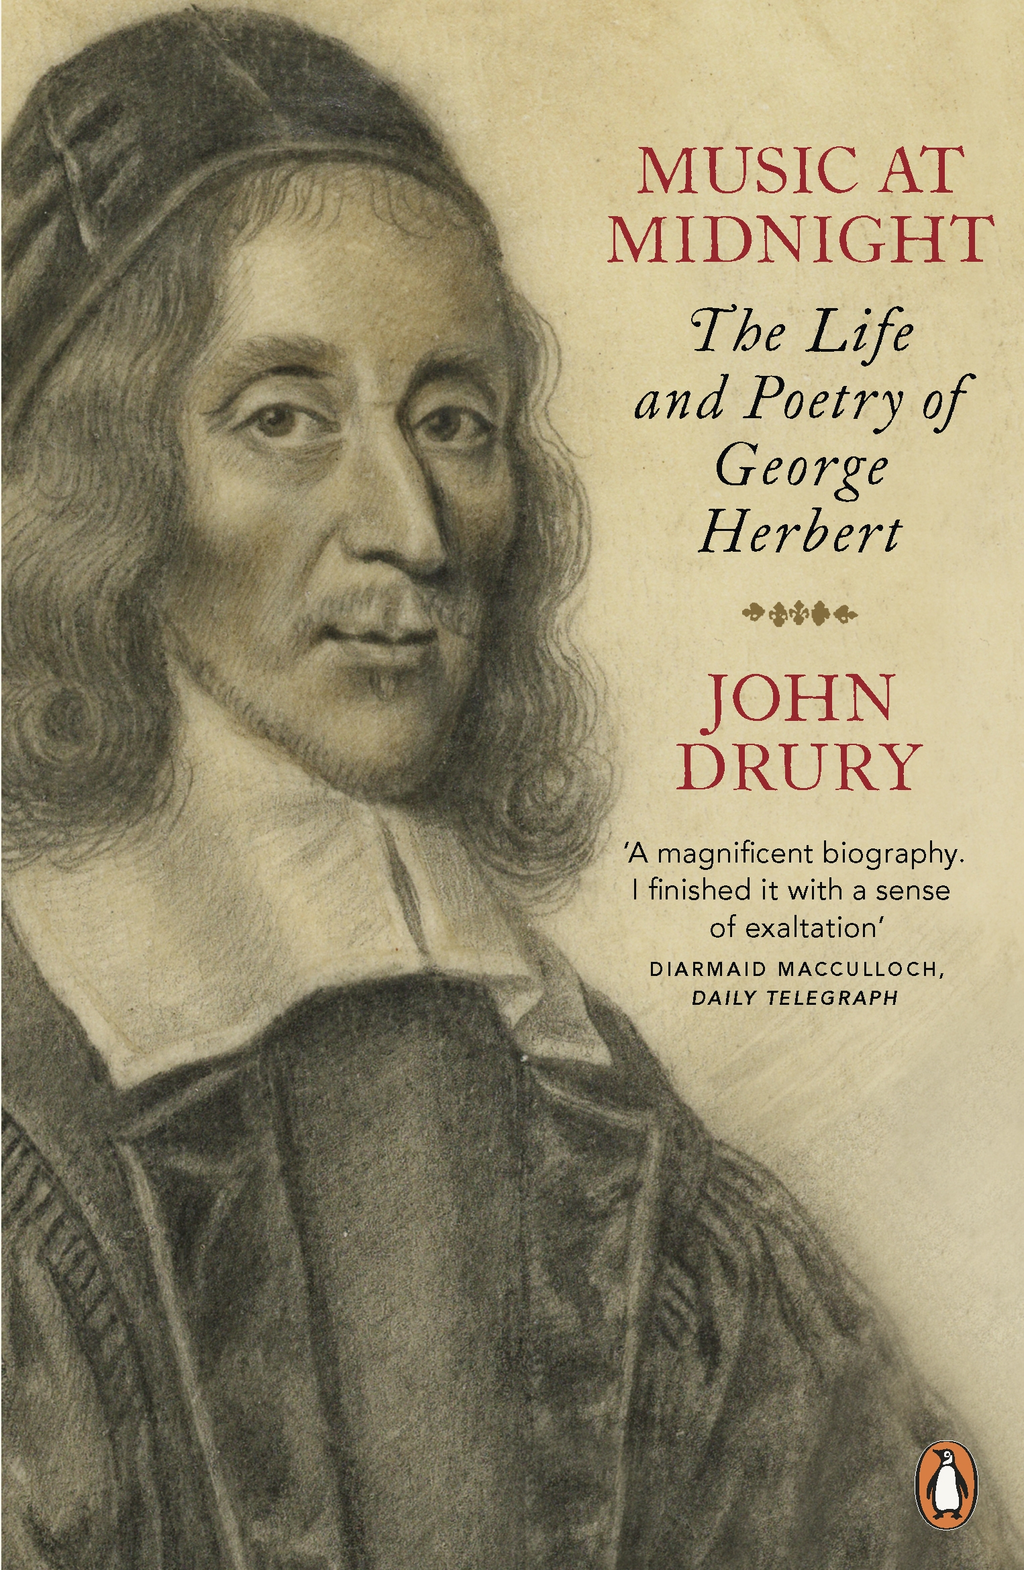 Music at Midnight The Life and Poetry of George Herbert